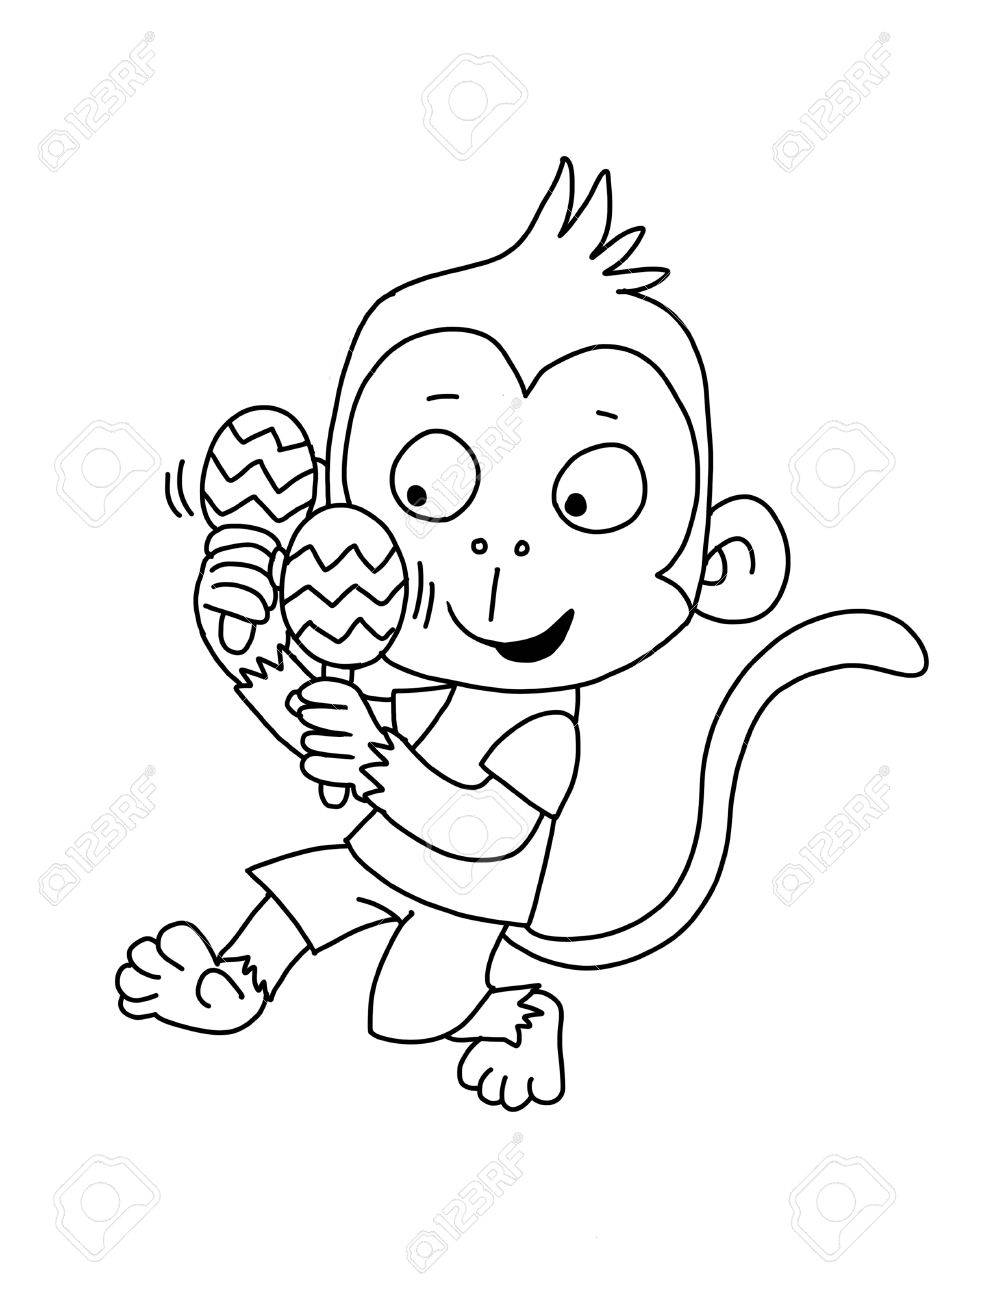 Cute Monkey With Maracas - Coloring Page Stock Photo, Picture And ...